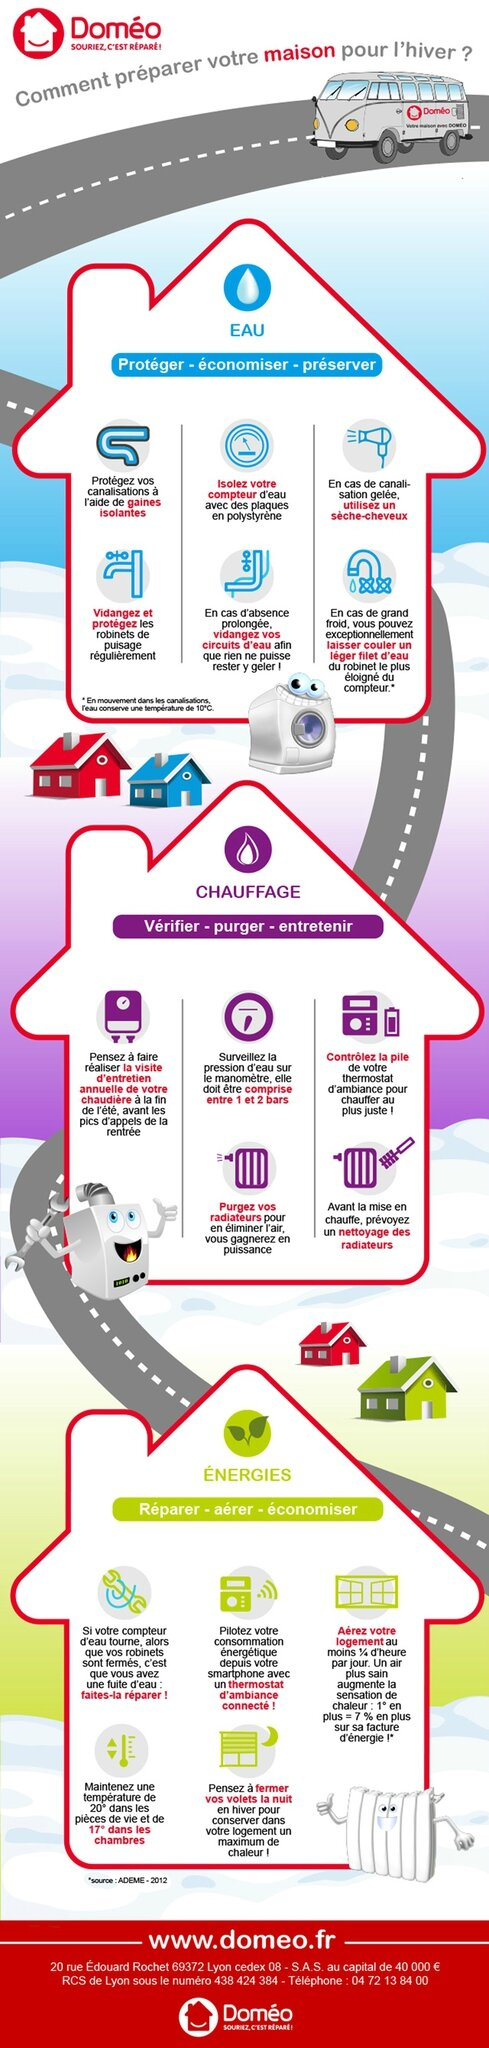 infographie-domeo-hiver